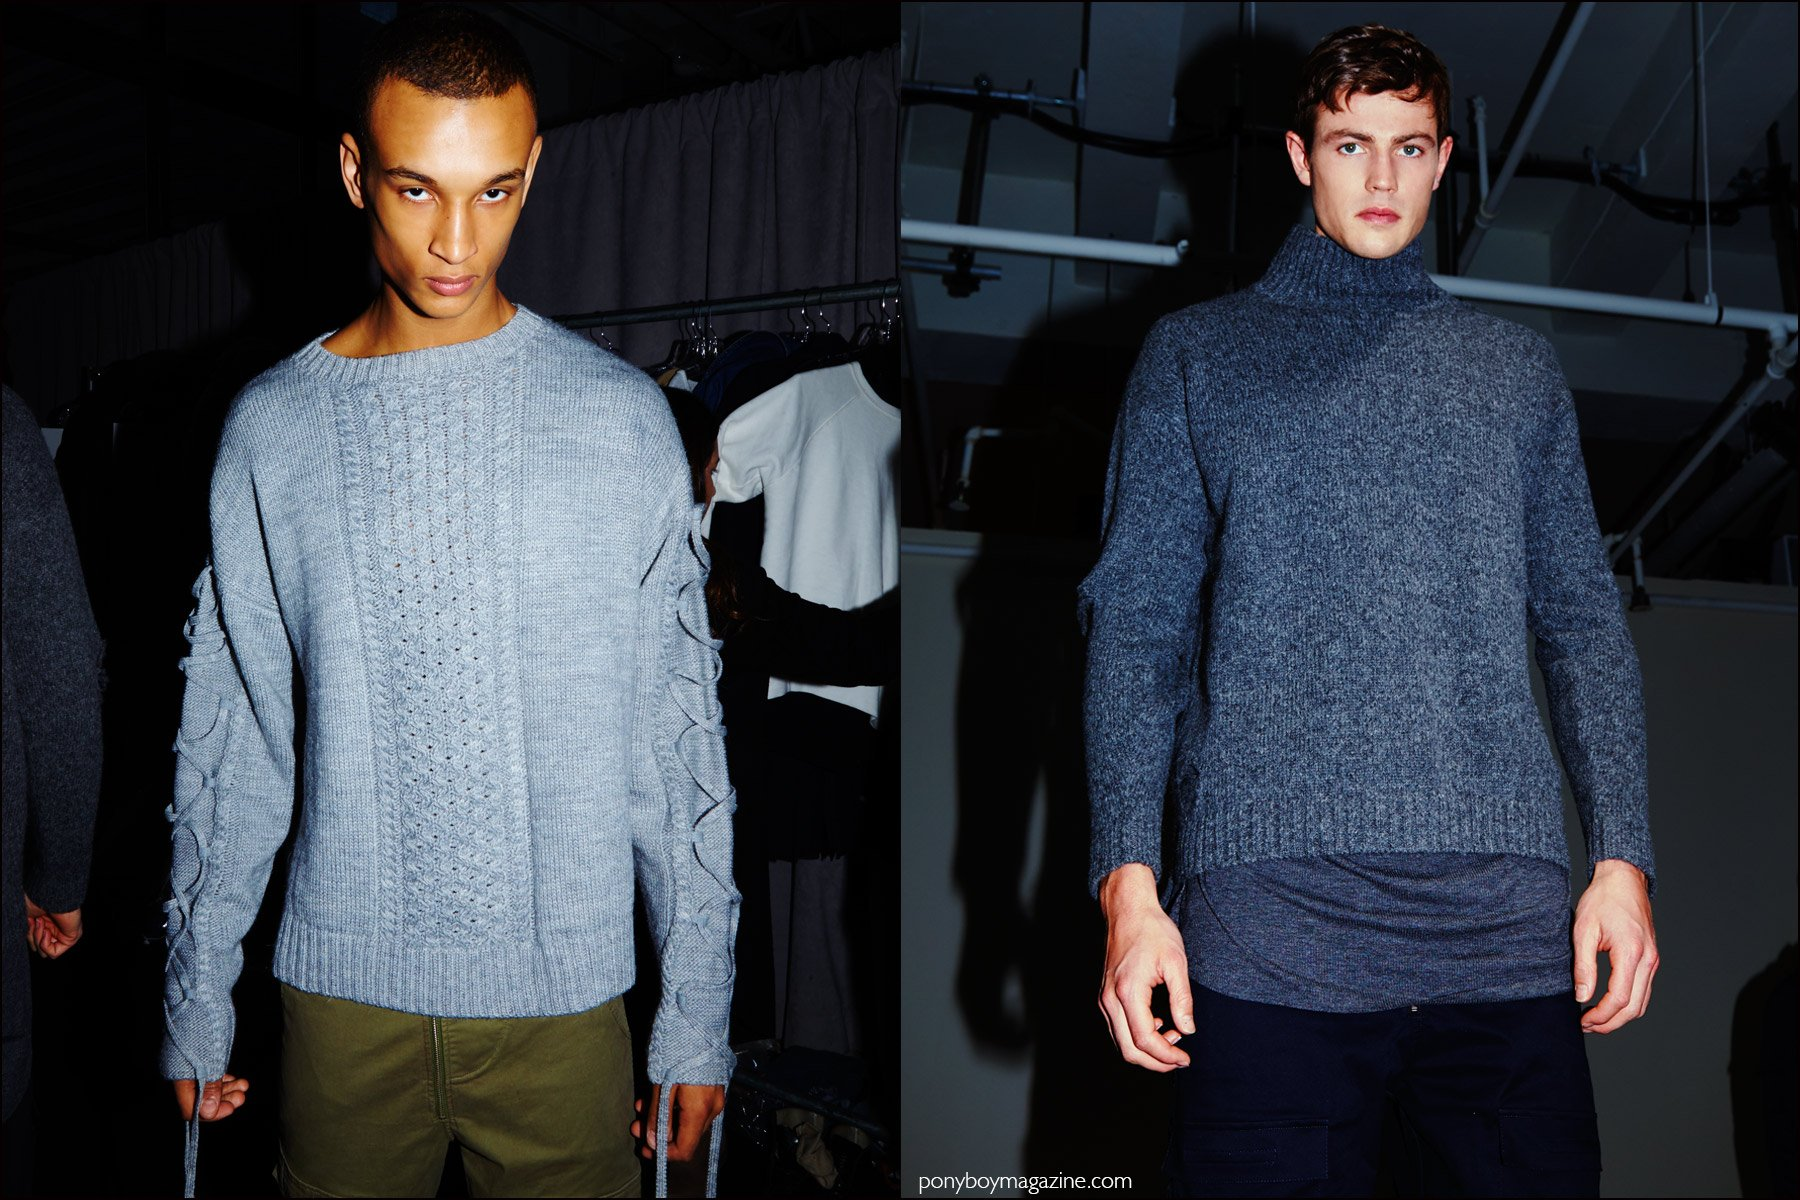 Male models snapped backstage in sweaters from Stampd F/W16 menswear show. Photography by Alexander Thompson for Ponyboy magazine NY.